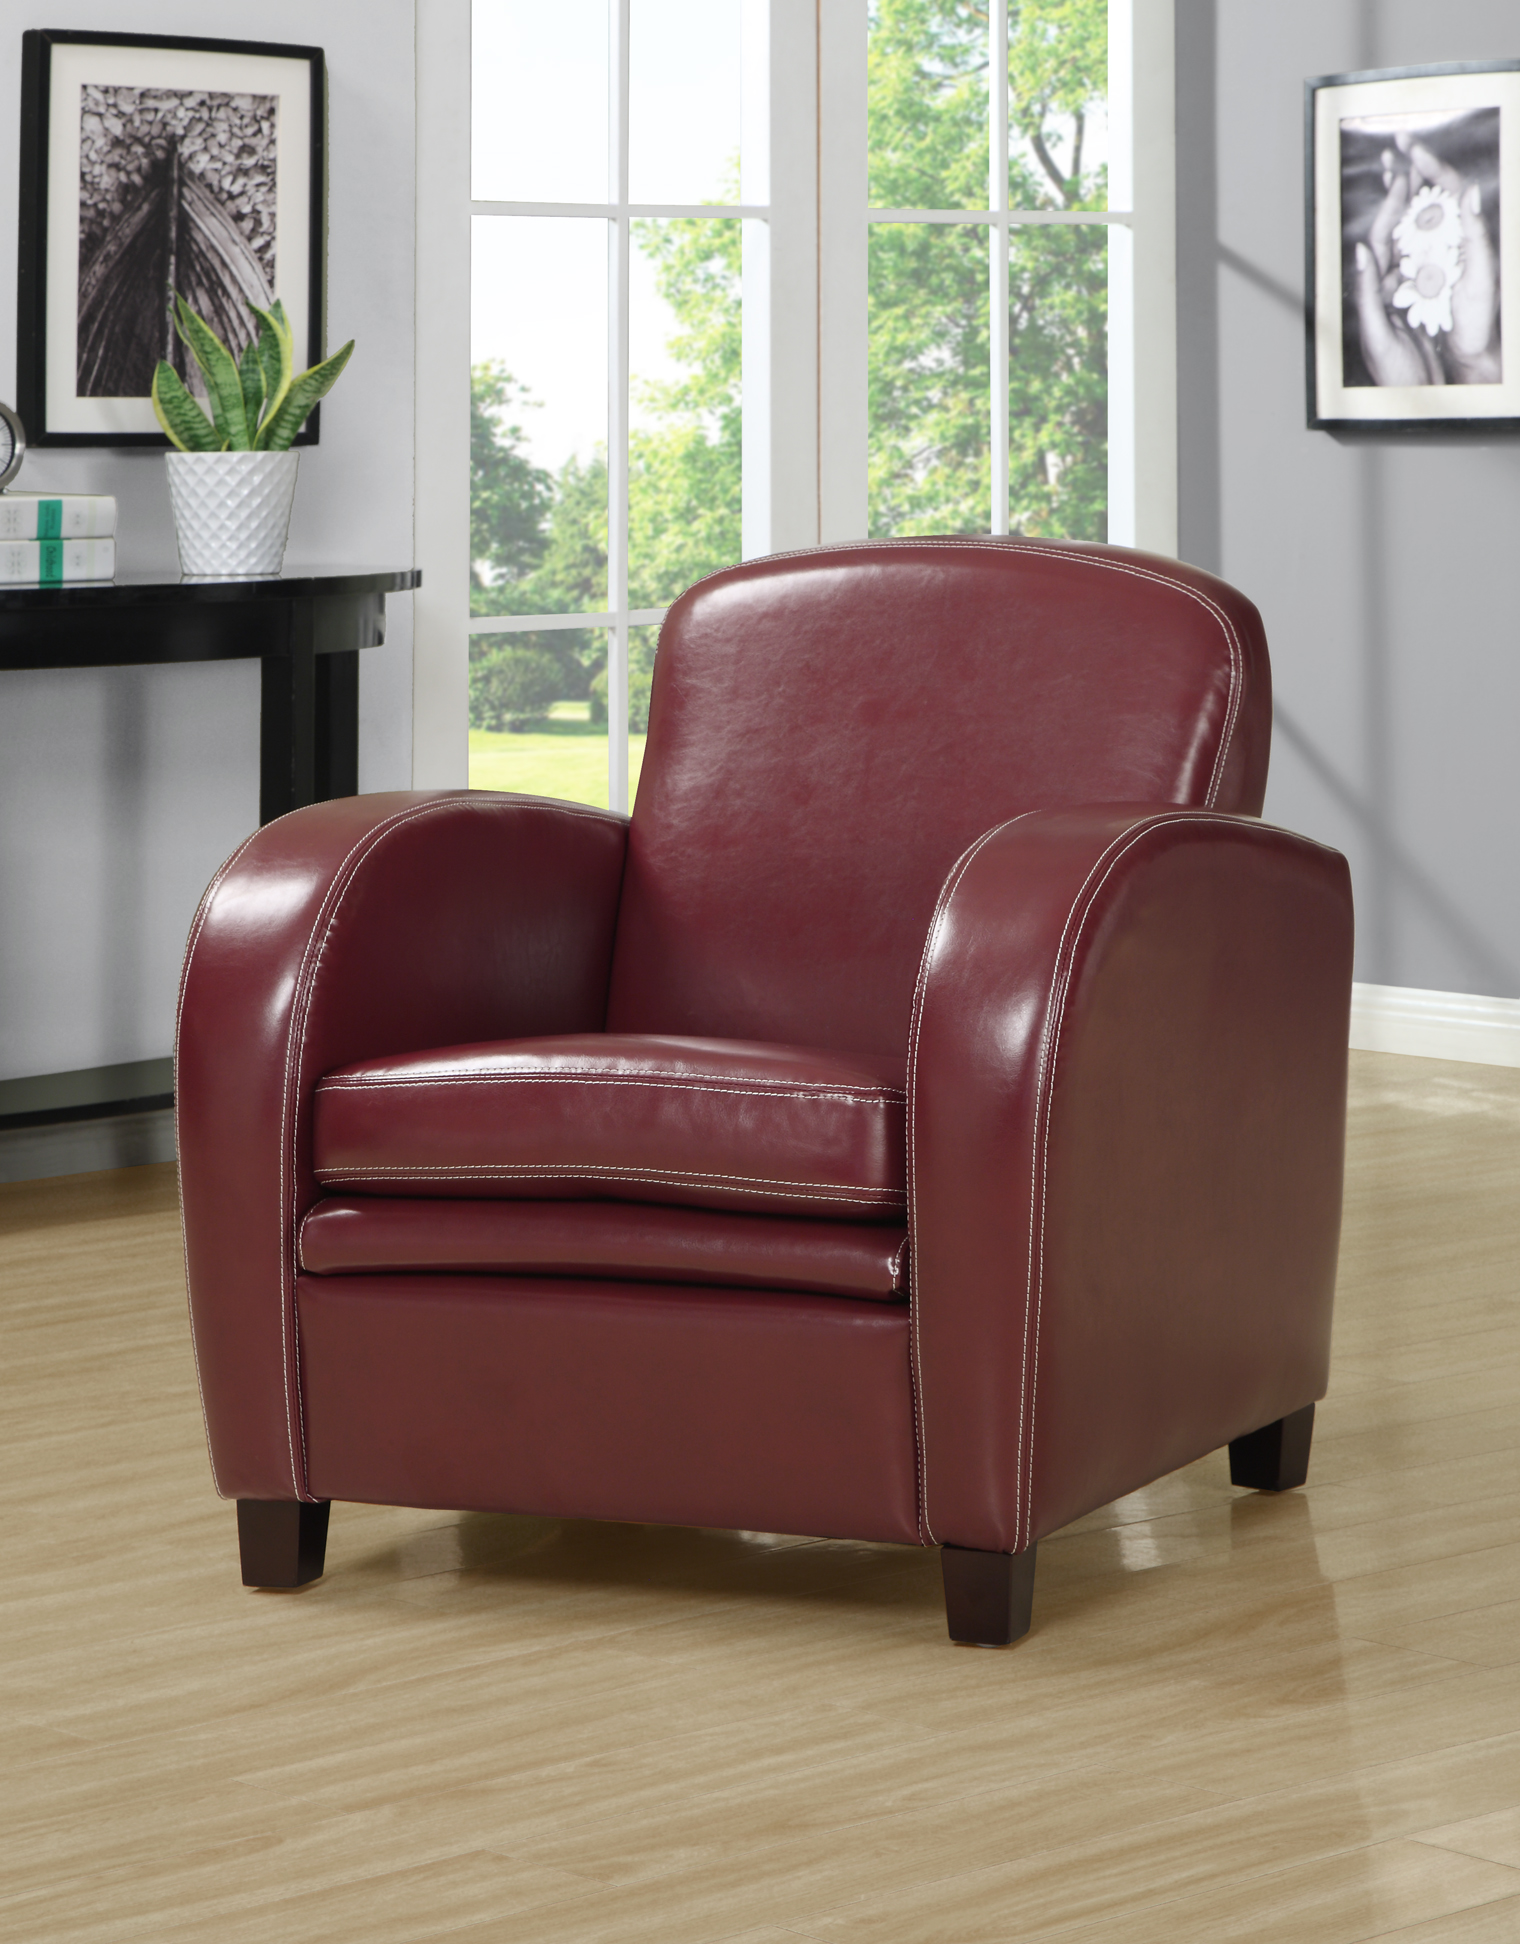 furniture gt living room furniture gt accent chair gt red